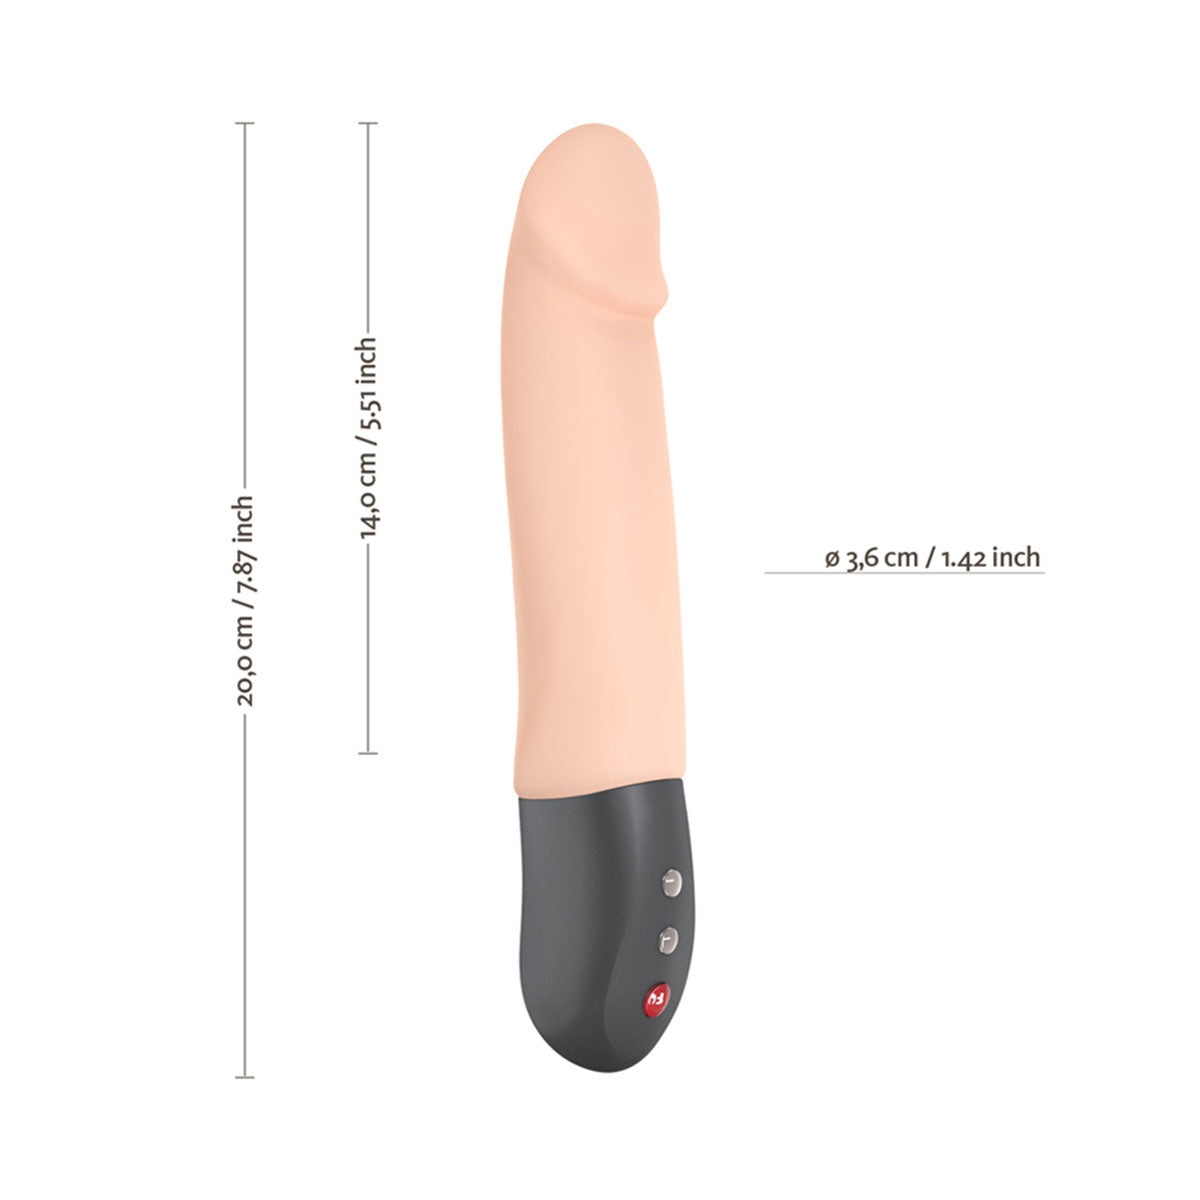 Fun Factory Stronic Real Realistic Pulsator Thrusting Dildo - Cream measurements